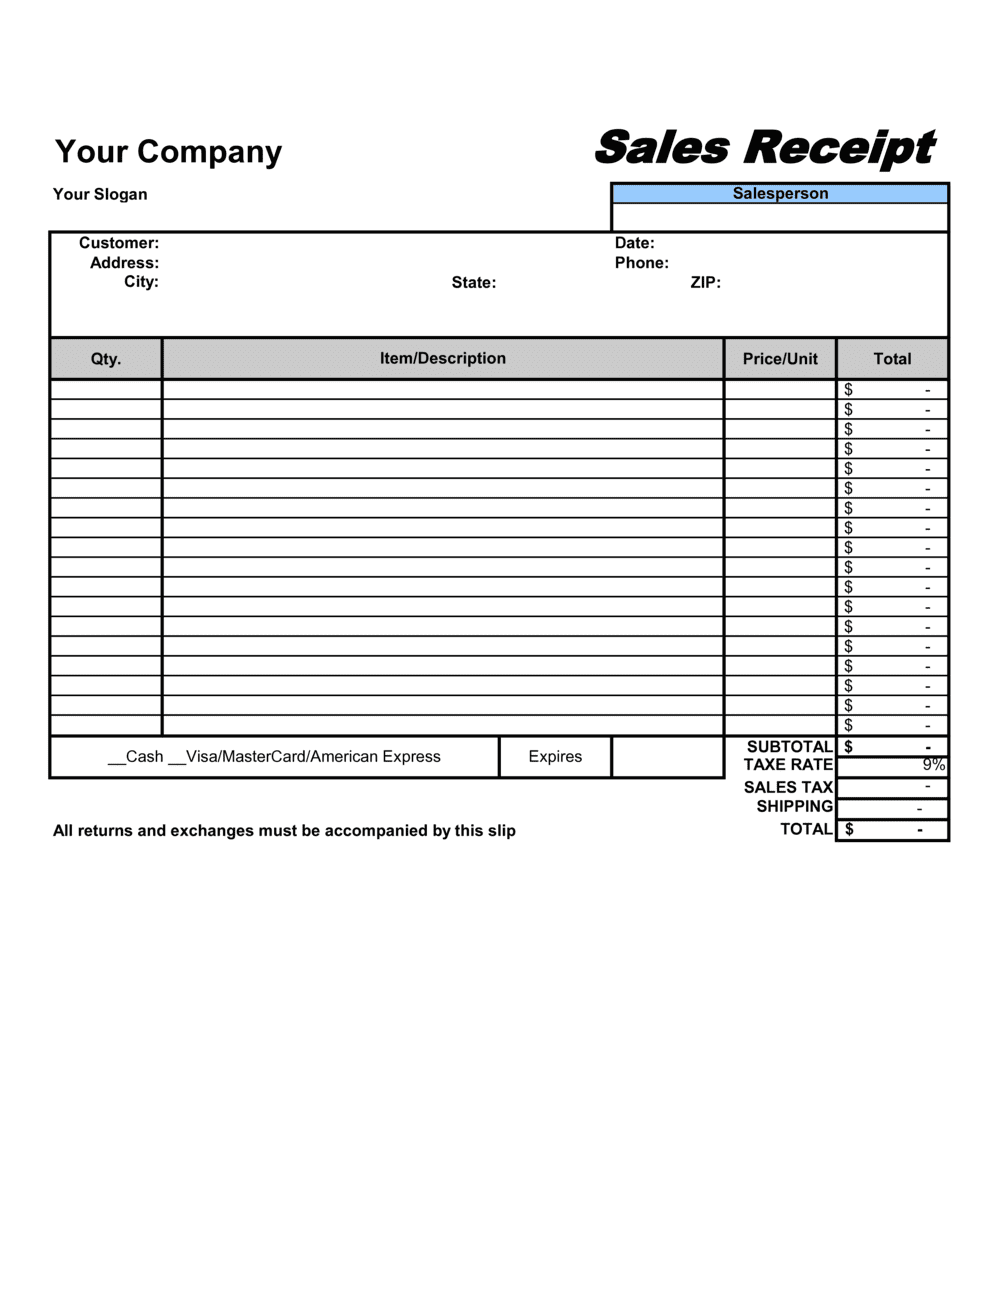 Business-in-a-Box's Sales Receipt Template